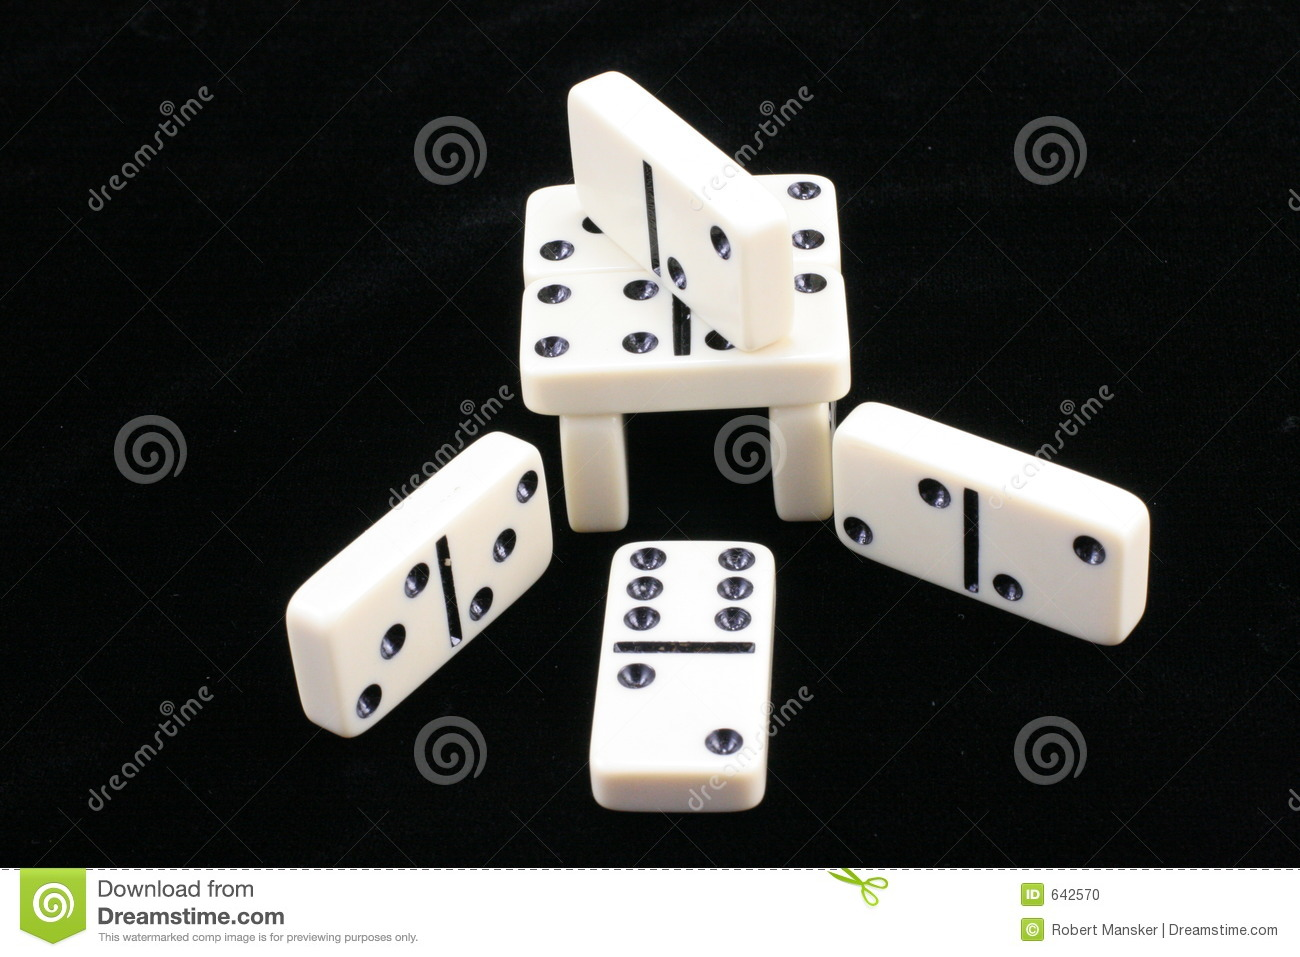 Stacked dominoes.